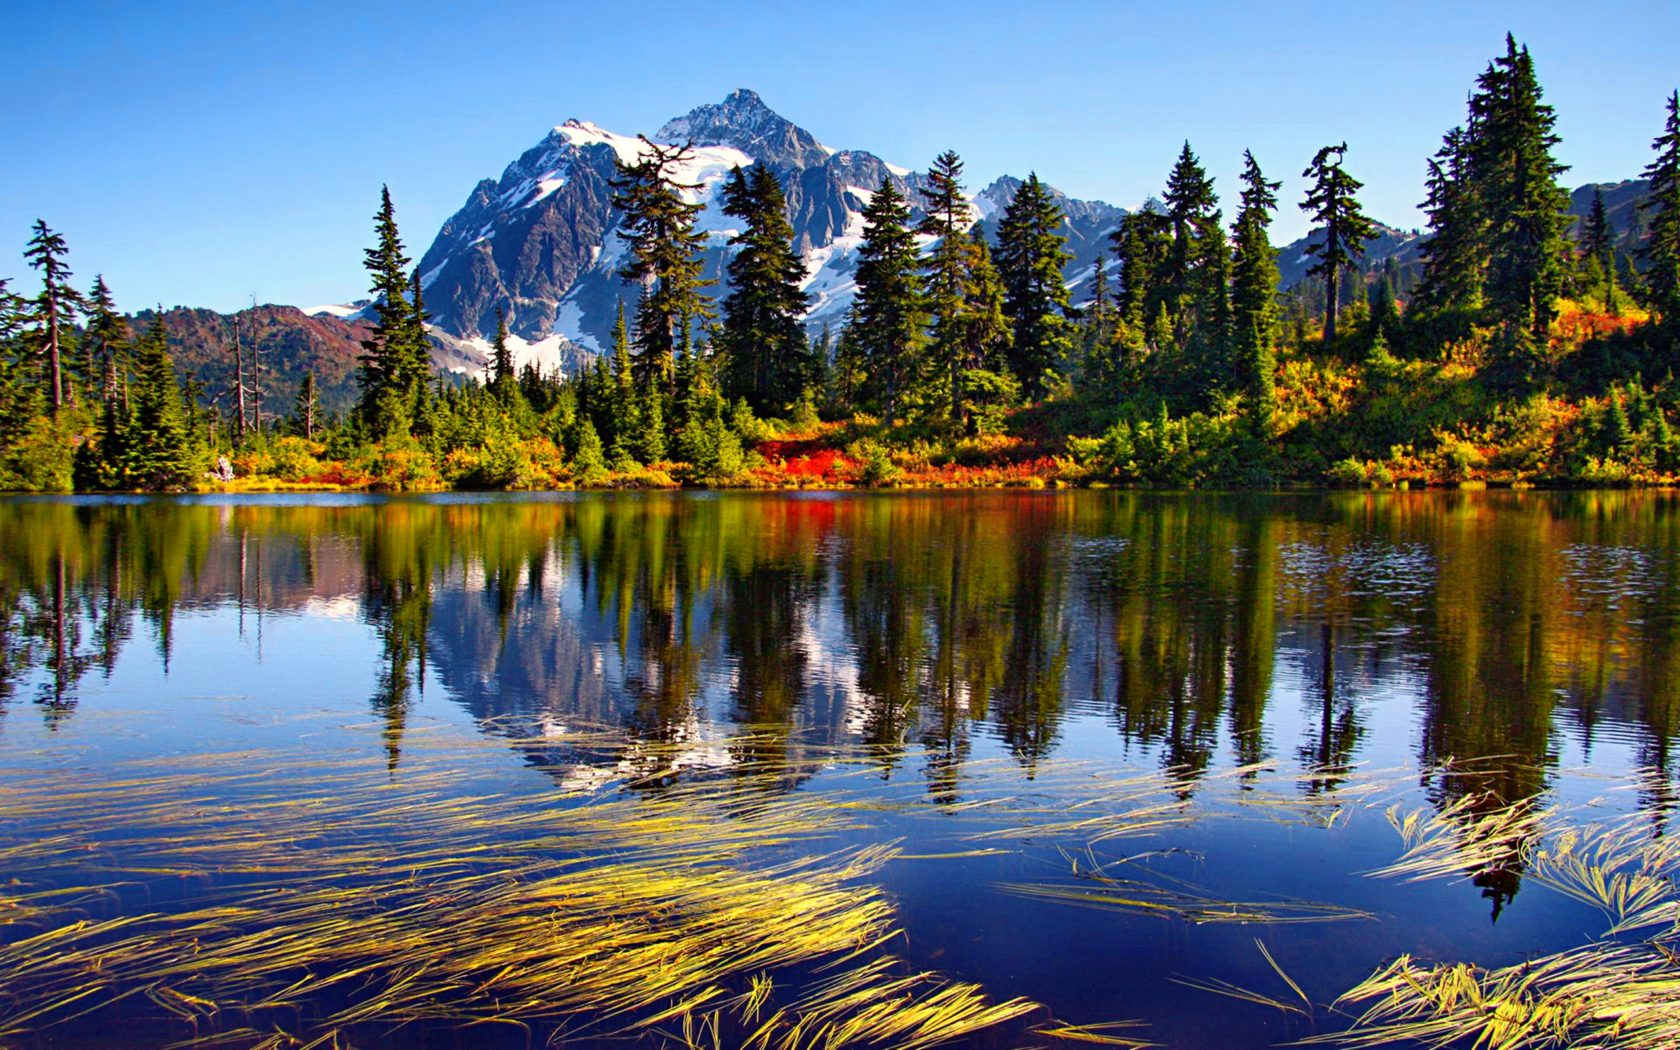 Desktop Wallpaper Fall Leaves Mount Baker Desktop Background 573343 Wallpapers13 Com